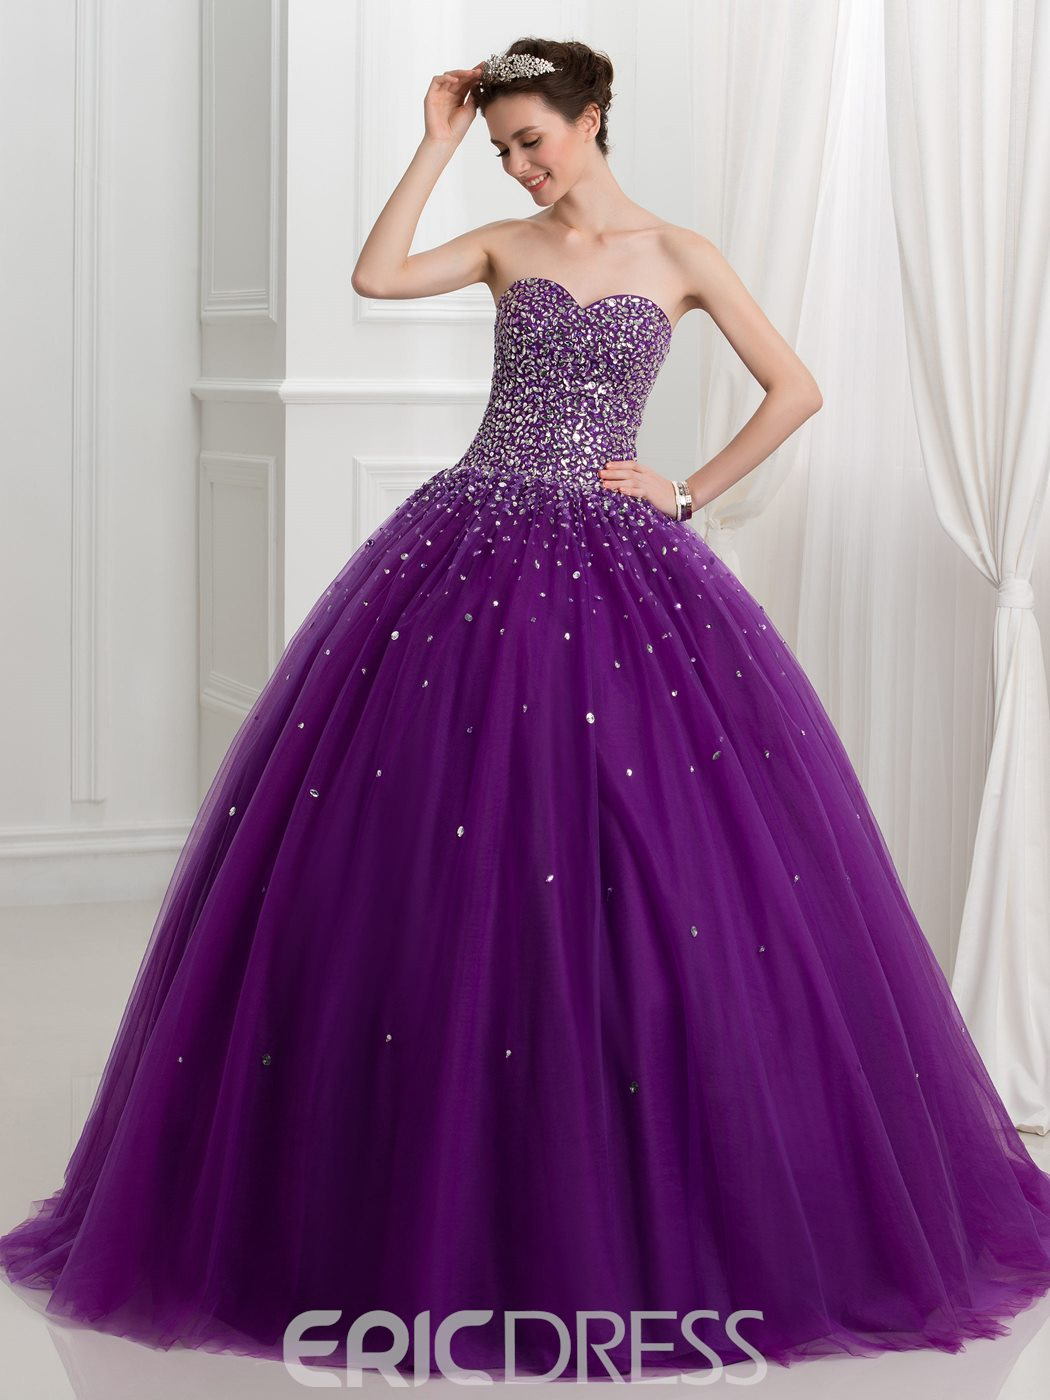 Ericdress Sweetheart Beading Lace Up Ball Gown Quinceanera